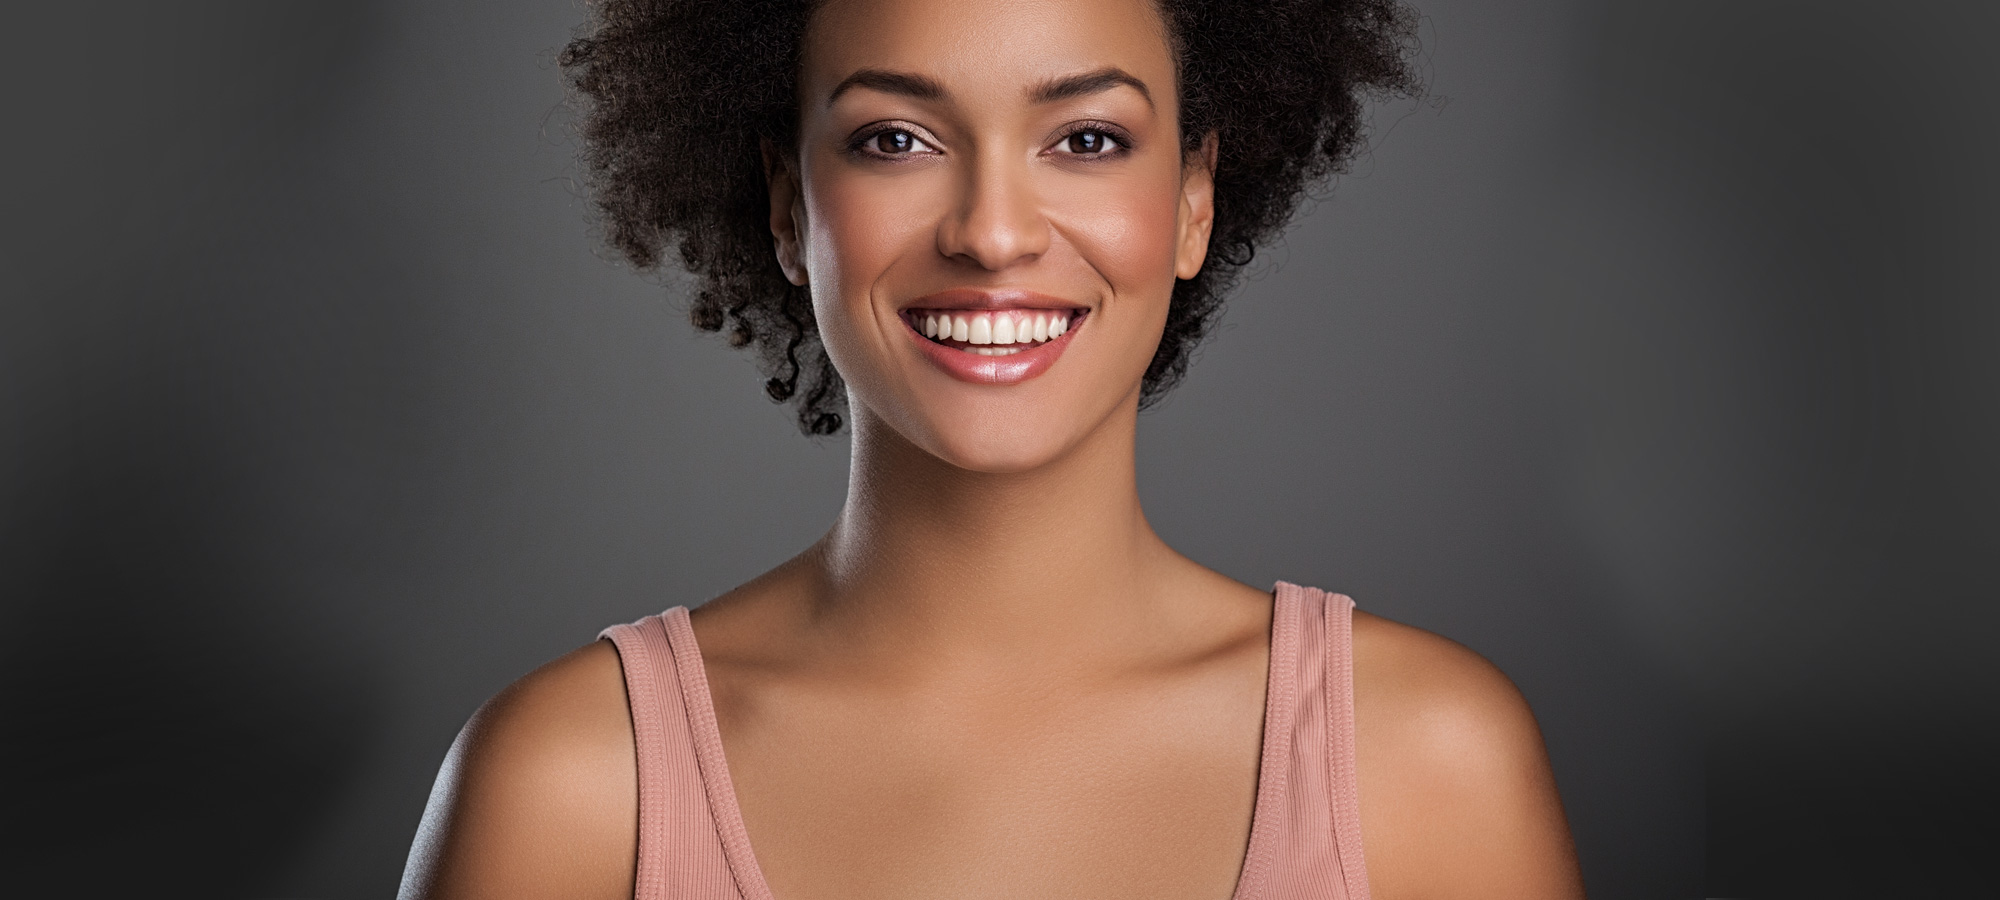 Young woman smiling with perfect teeth